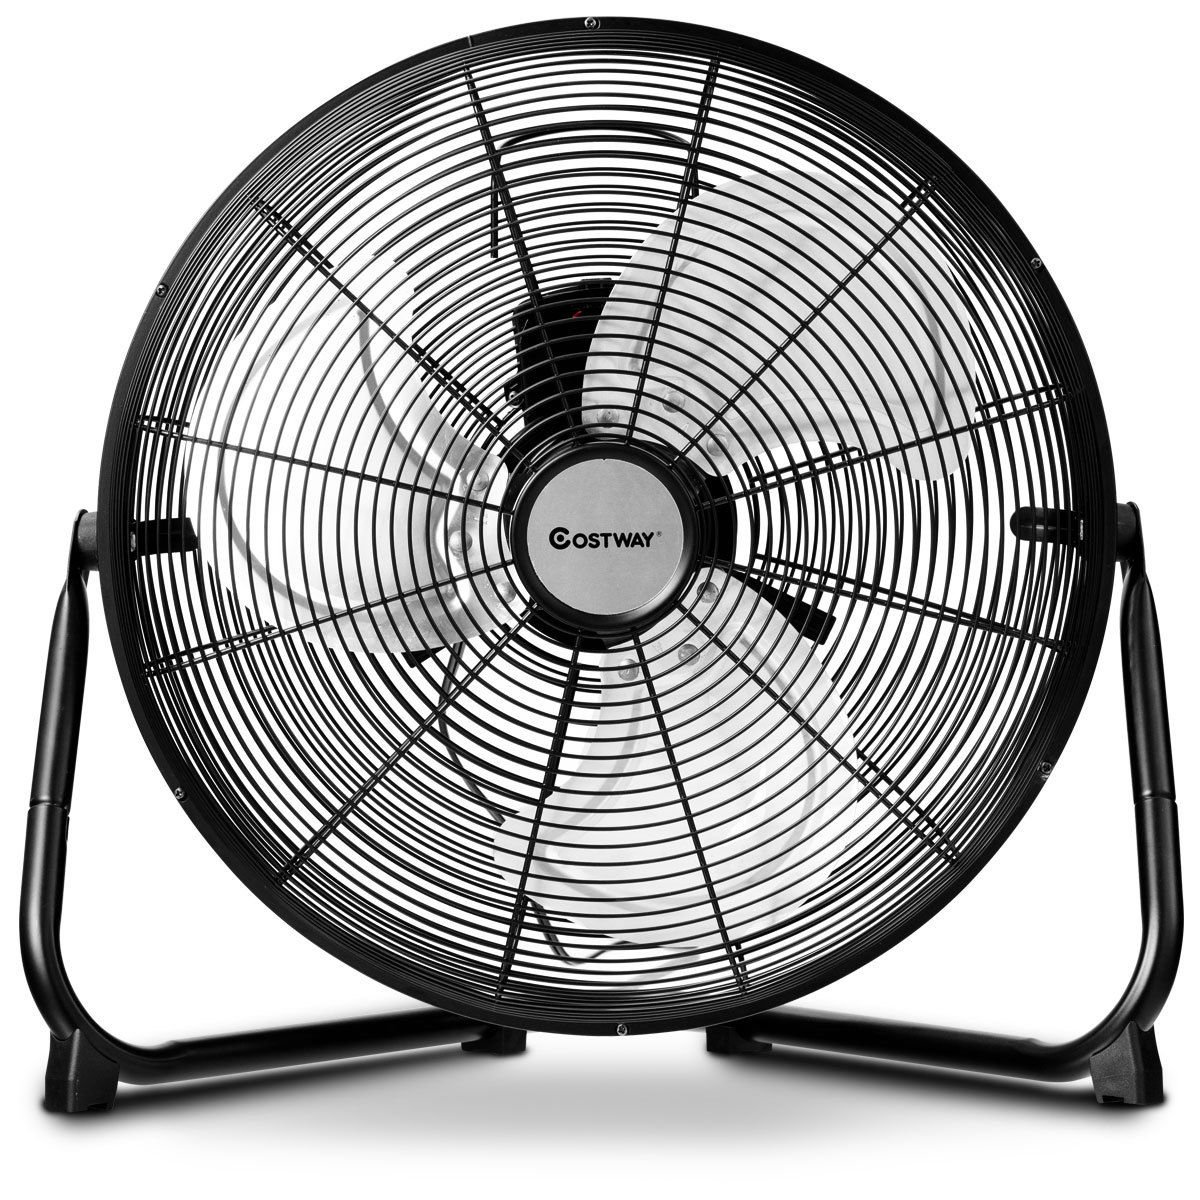 COSTWAY High Velocity Fan 16-Inch 3-Speed Metal Commercial Industrial Grade 360° Floor Fan, Black